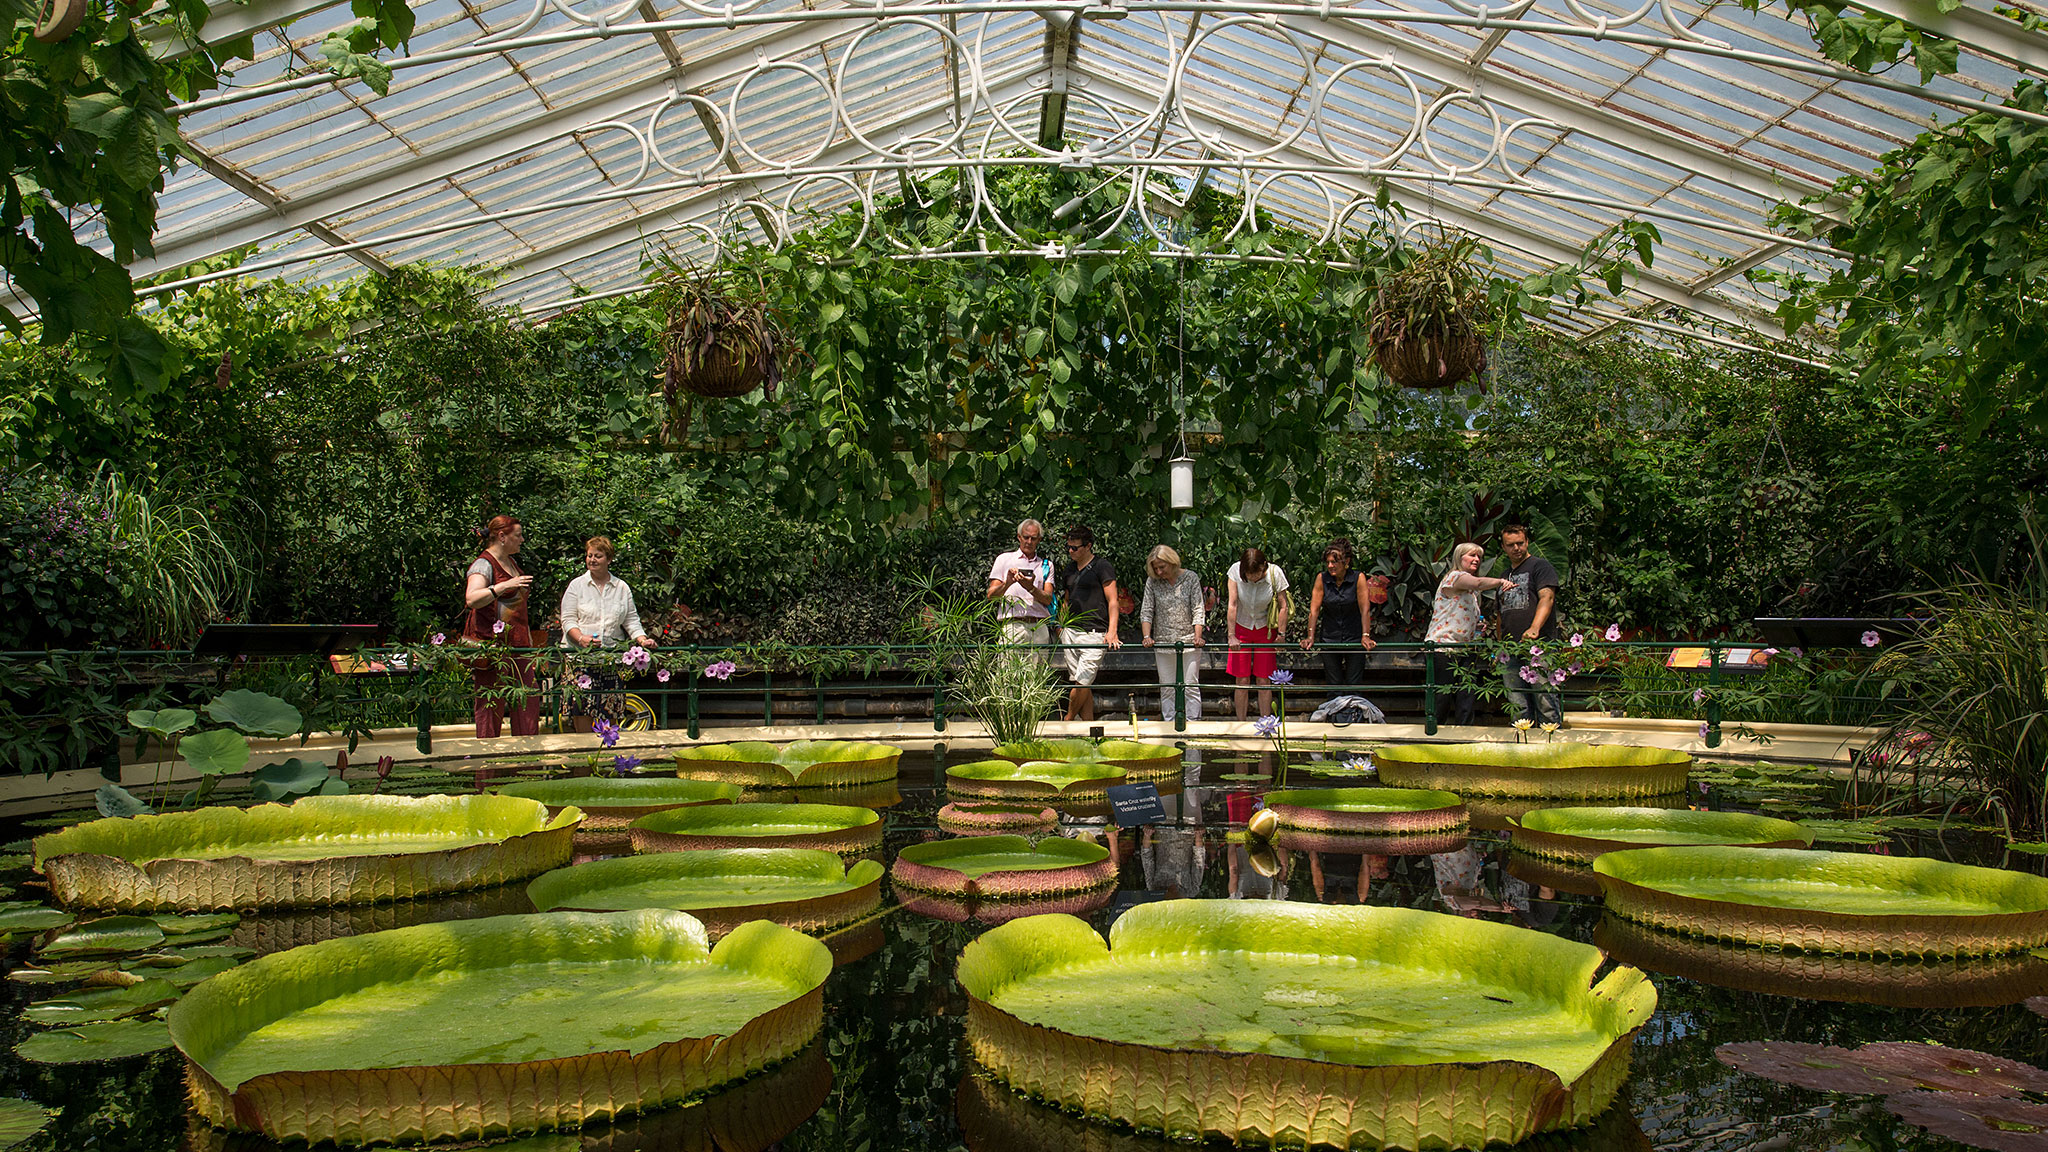 How To Fund The World Famous Royal Botanic Gardens At Kew   Financial Times